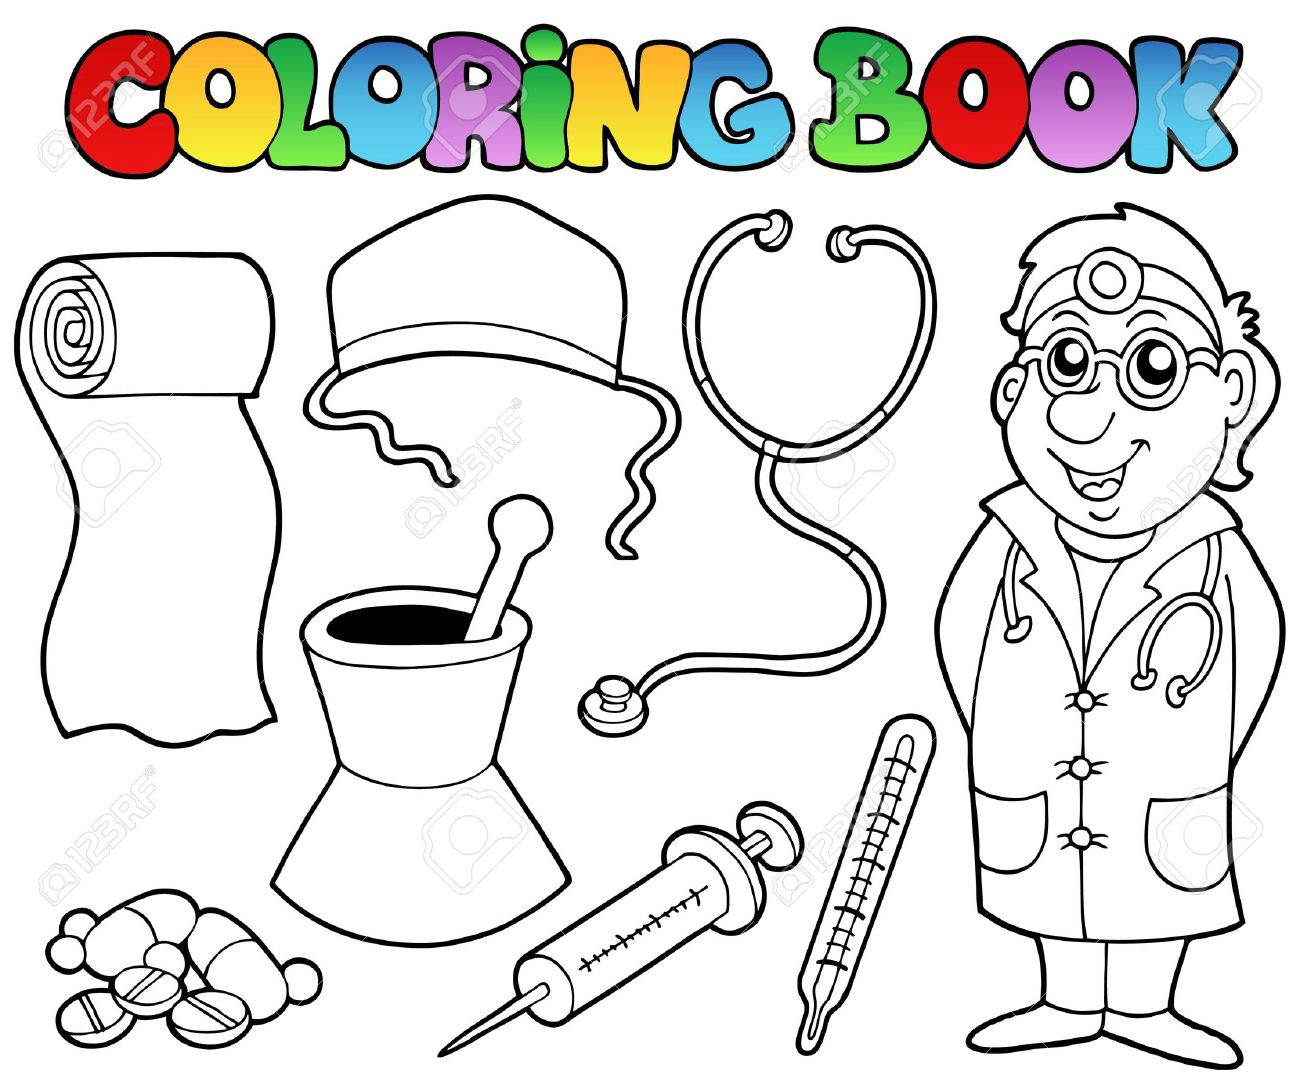 Anatomy coloring book for health professions - Graphic